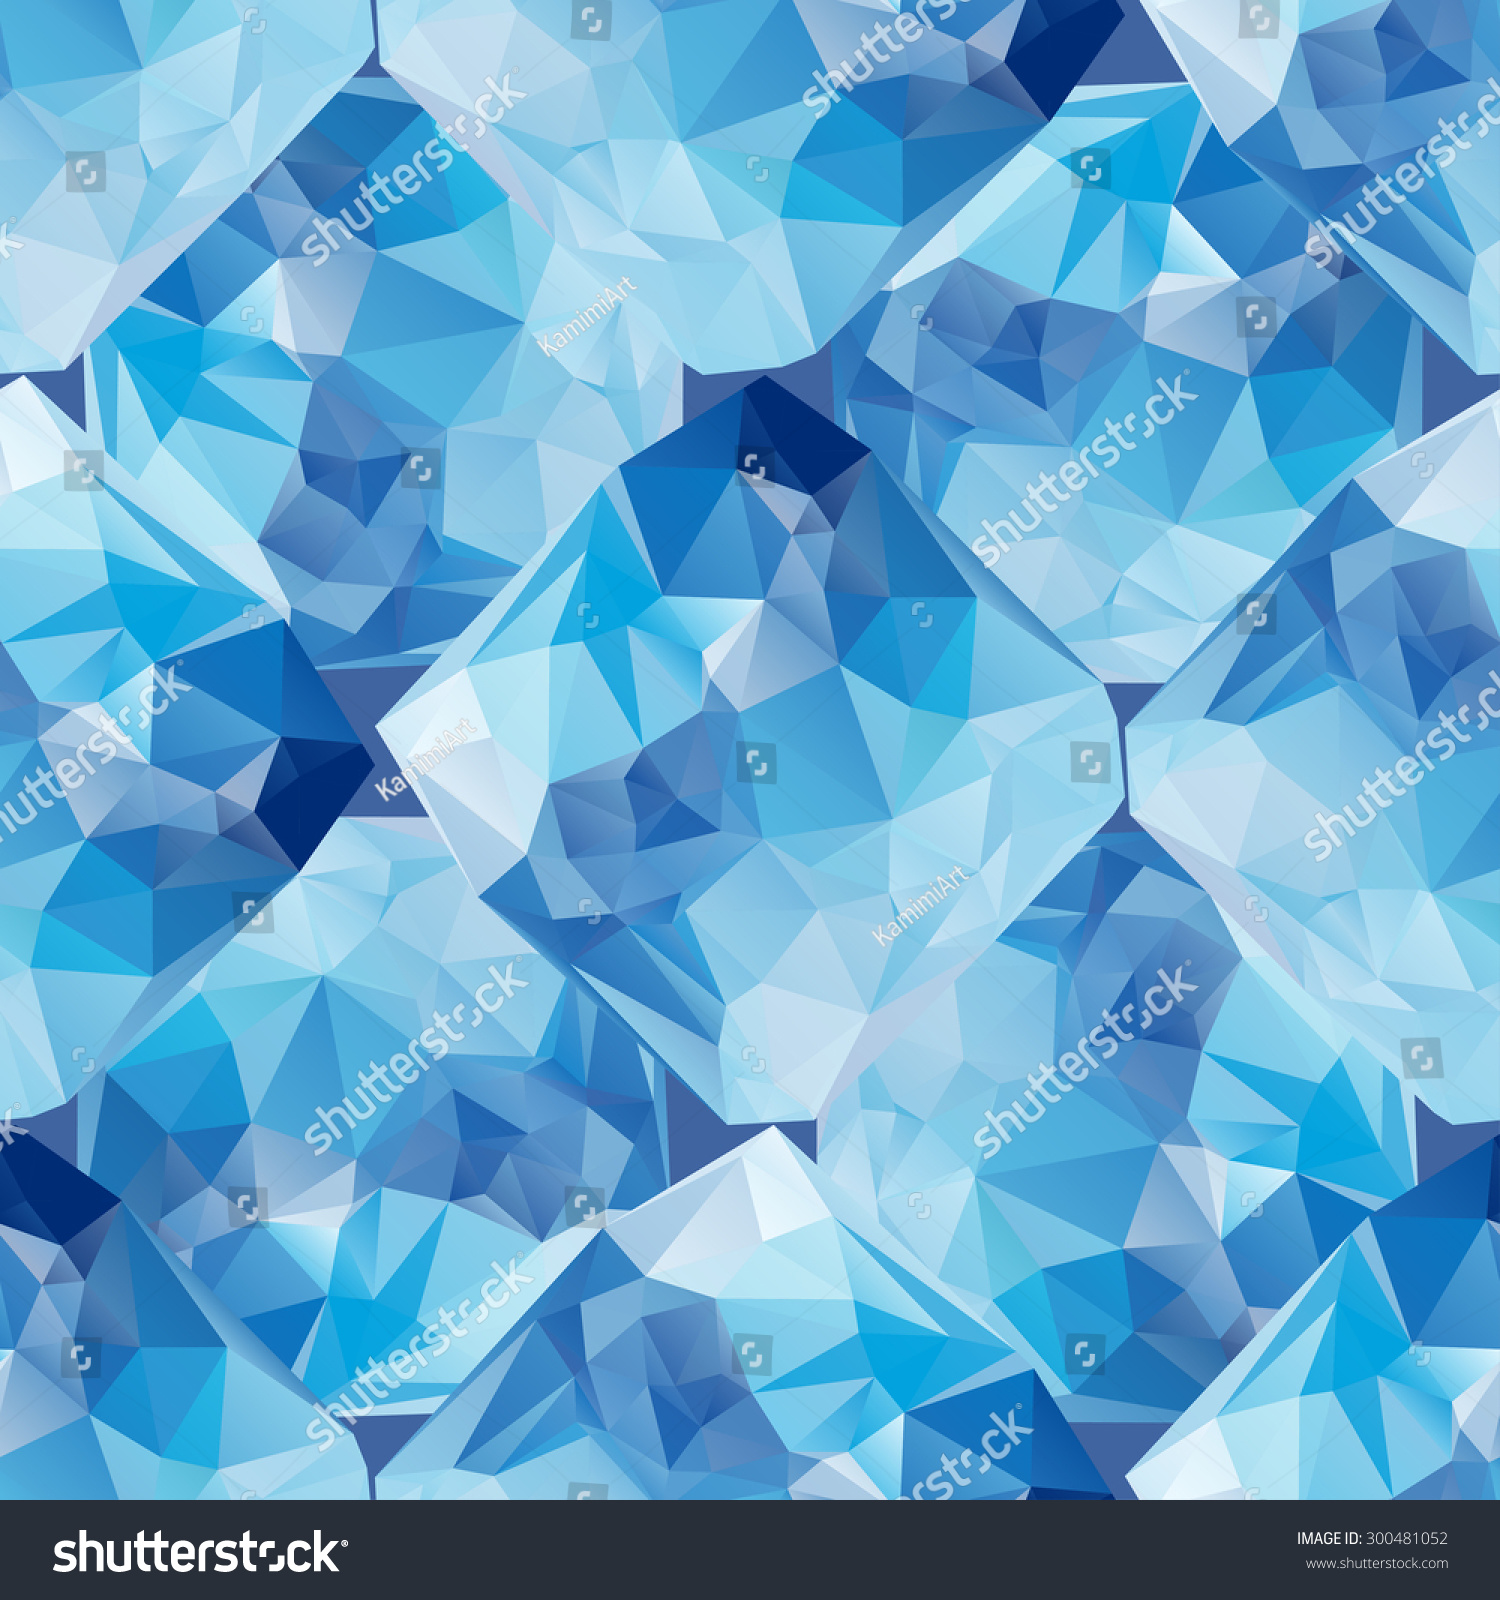 blue diamond pattern wallpaper